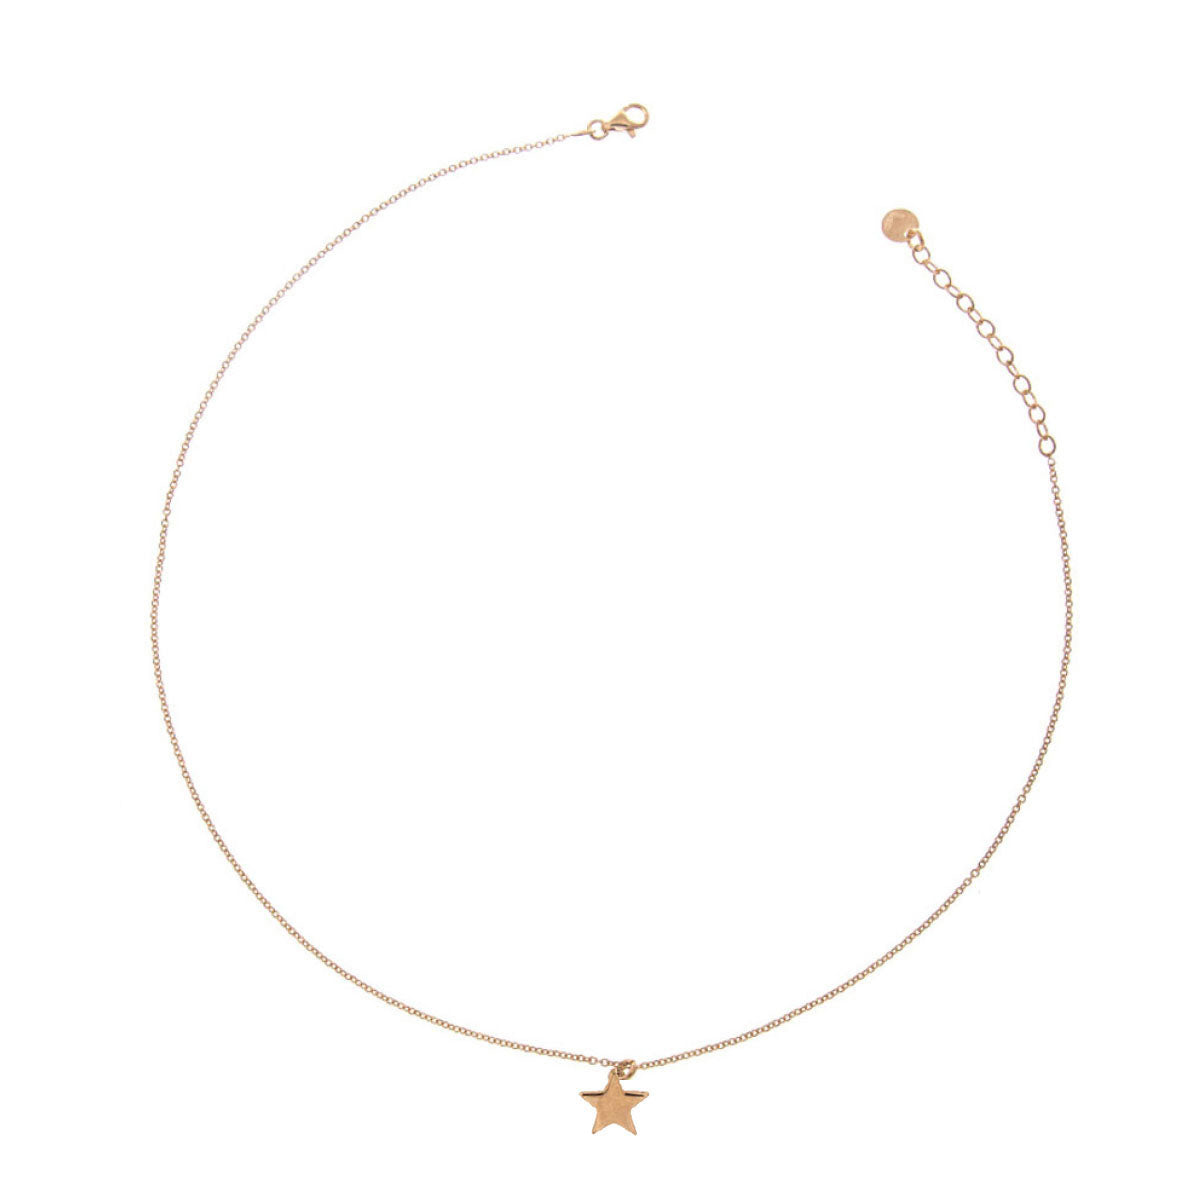 Chokers - Choker With Central Rounded Subject - Star - 1 | Rue des Mille